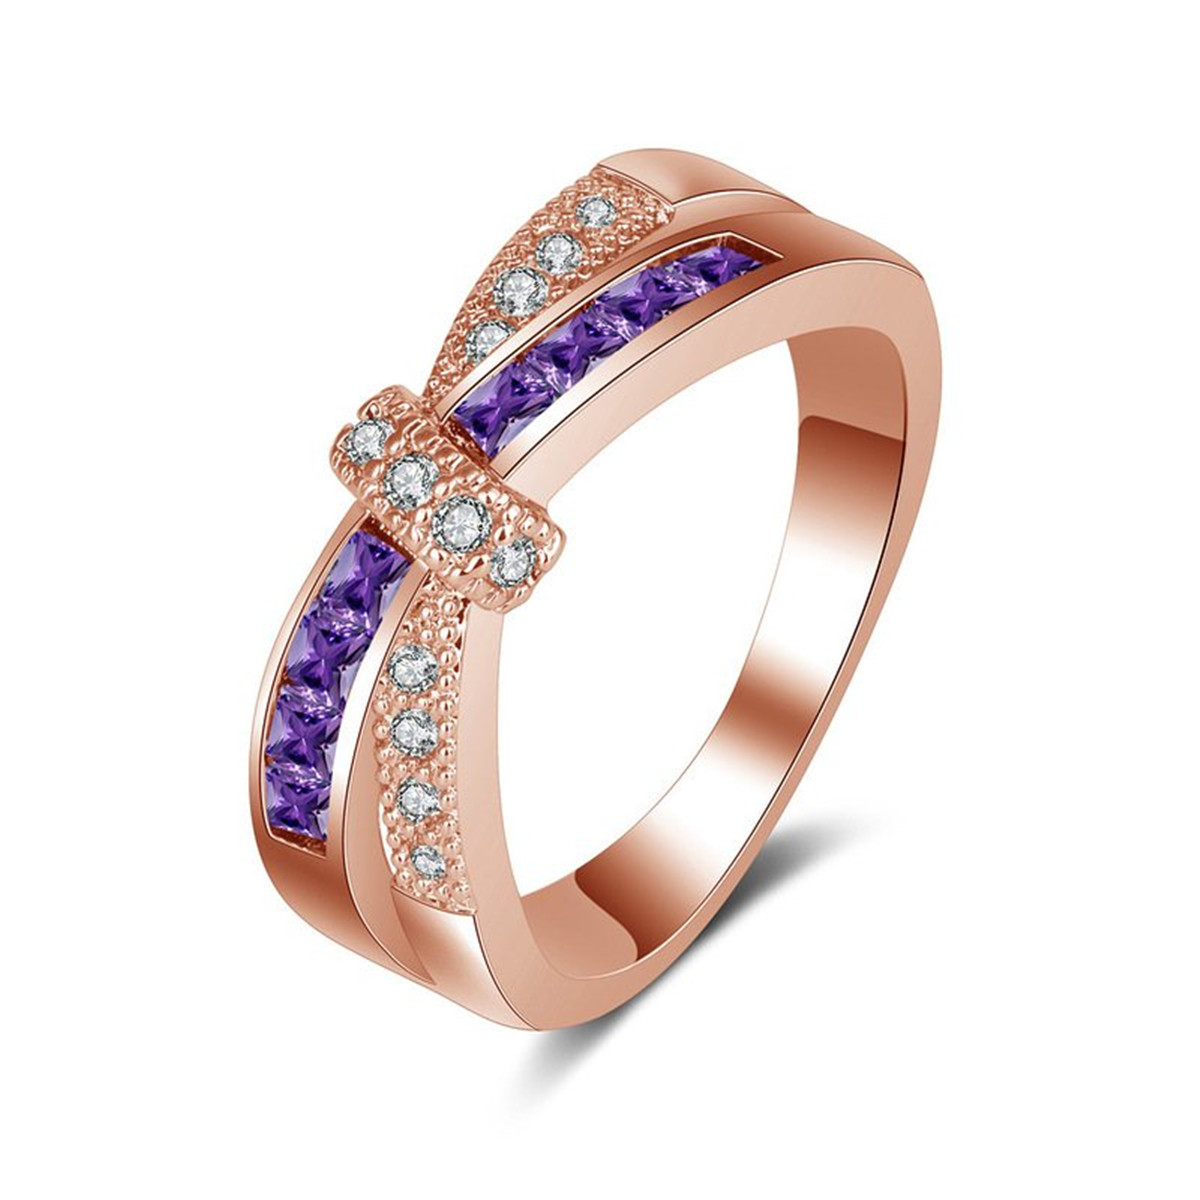 Elegant Womens Wedding Rings Shellhard Sexy Rose Gold Purple Crystal CZ Cross Ring Fashion Jewelry Accessories Gift Size 6-9